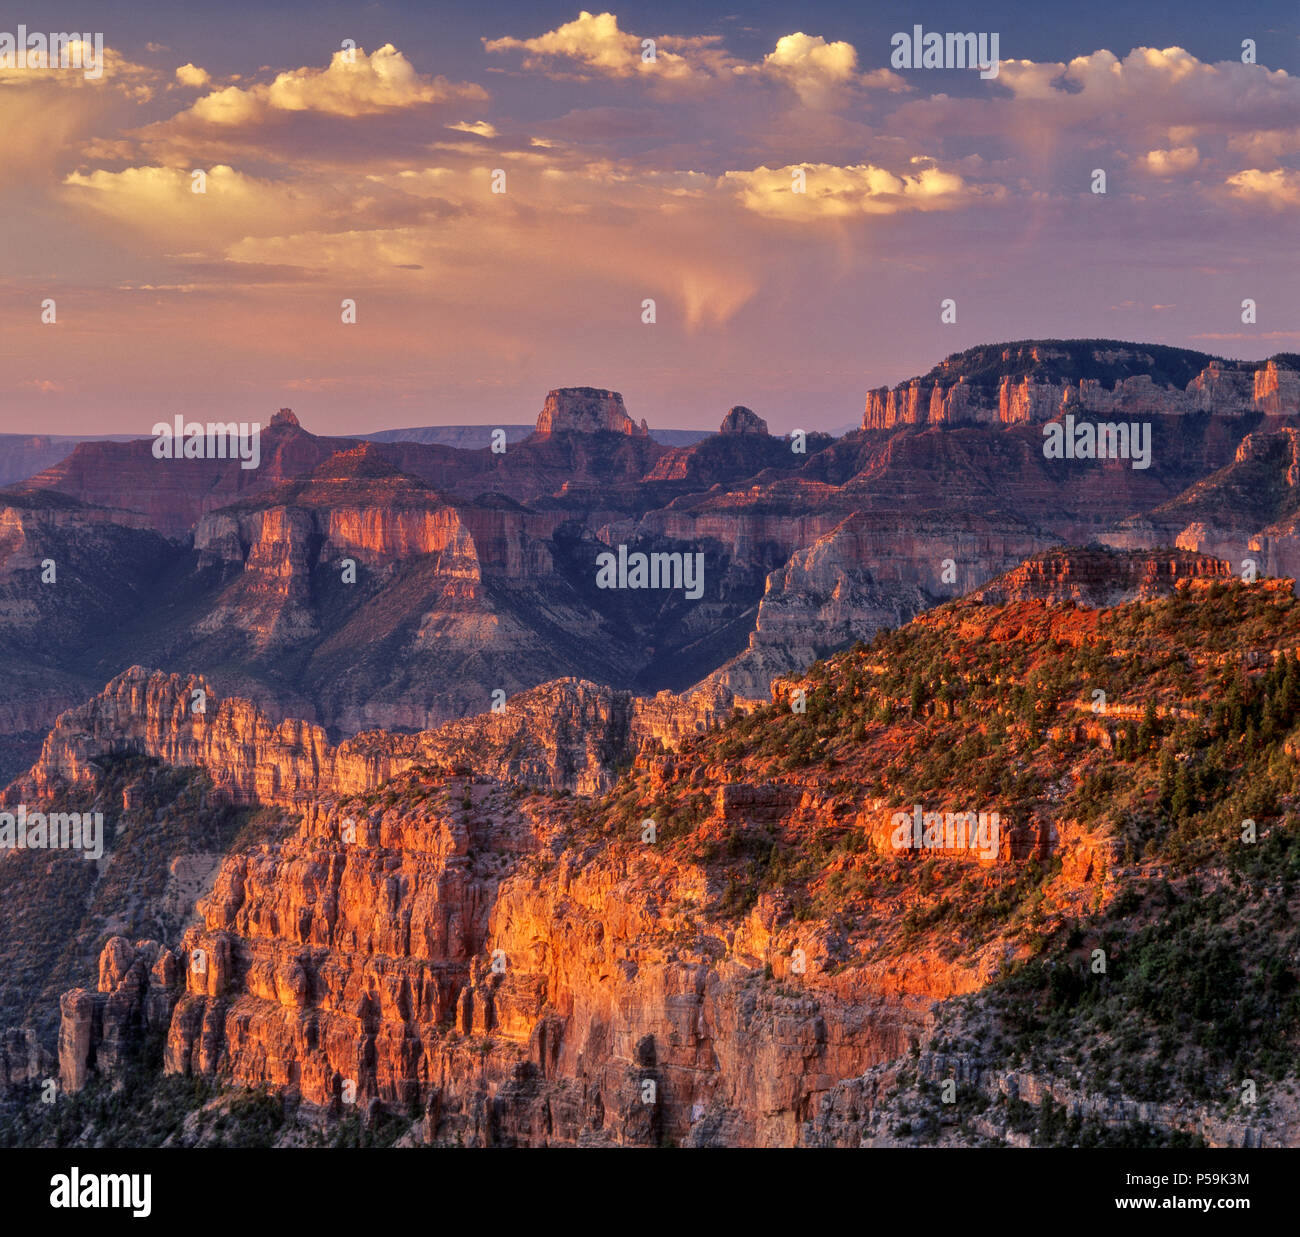 Sunrise, Nankoweap Canyon, Grand Canyon National Park, Arizona Stockbild